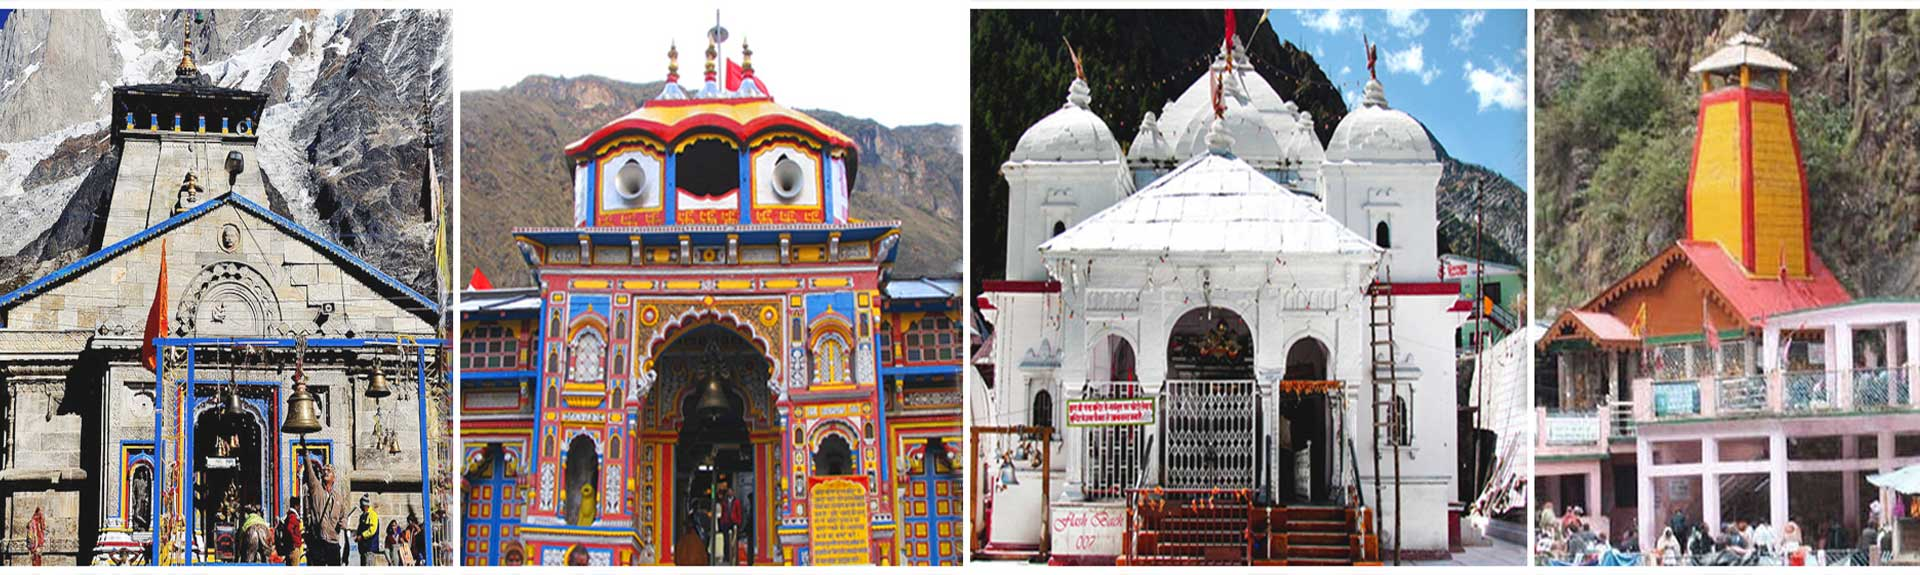 Chardham yatra package from chardham tourism